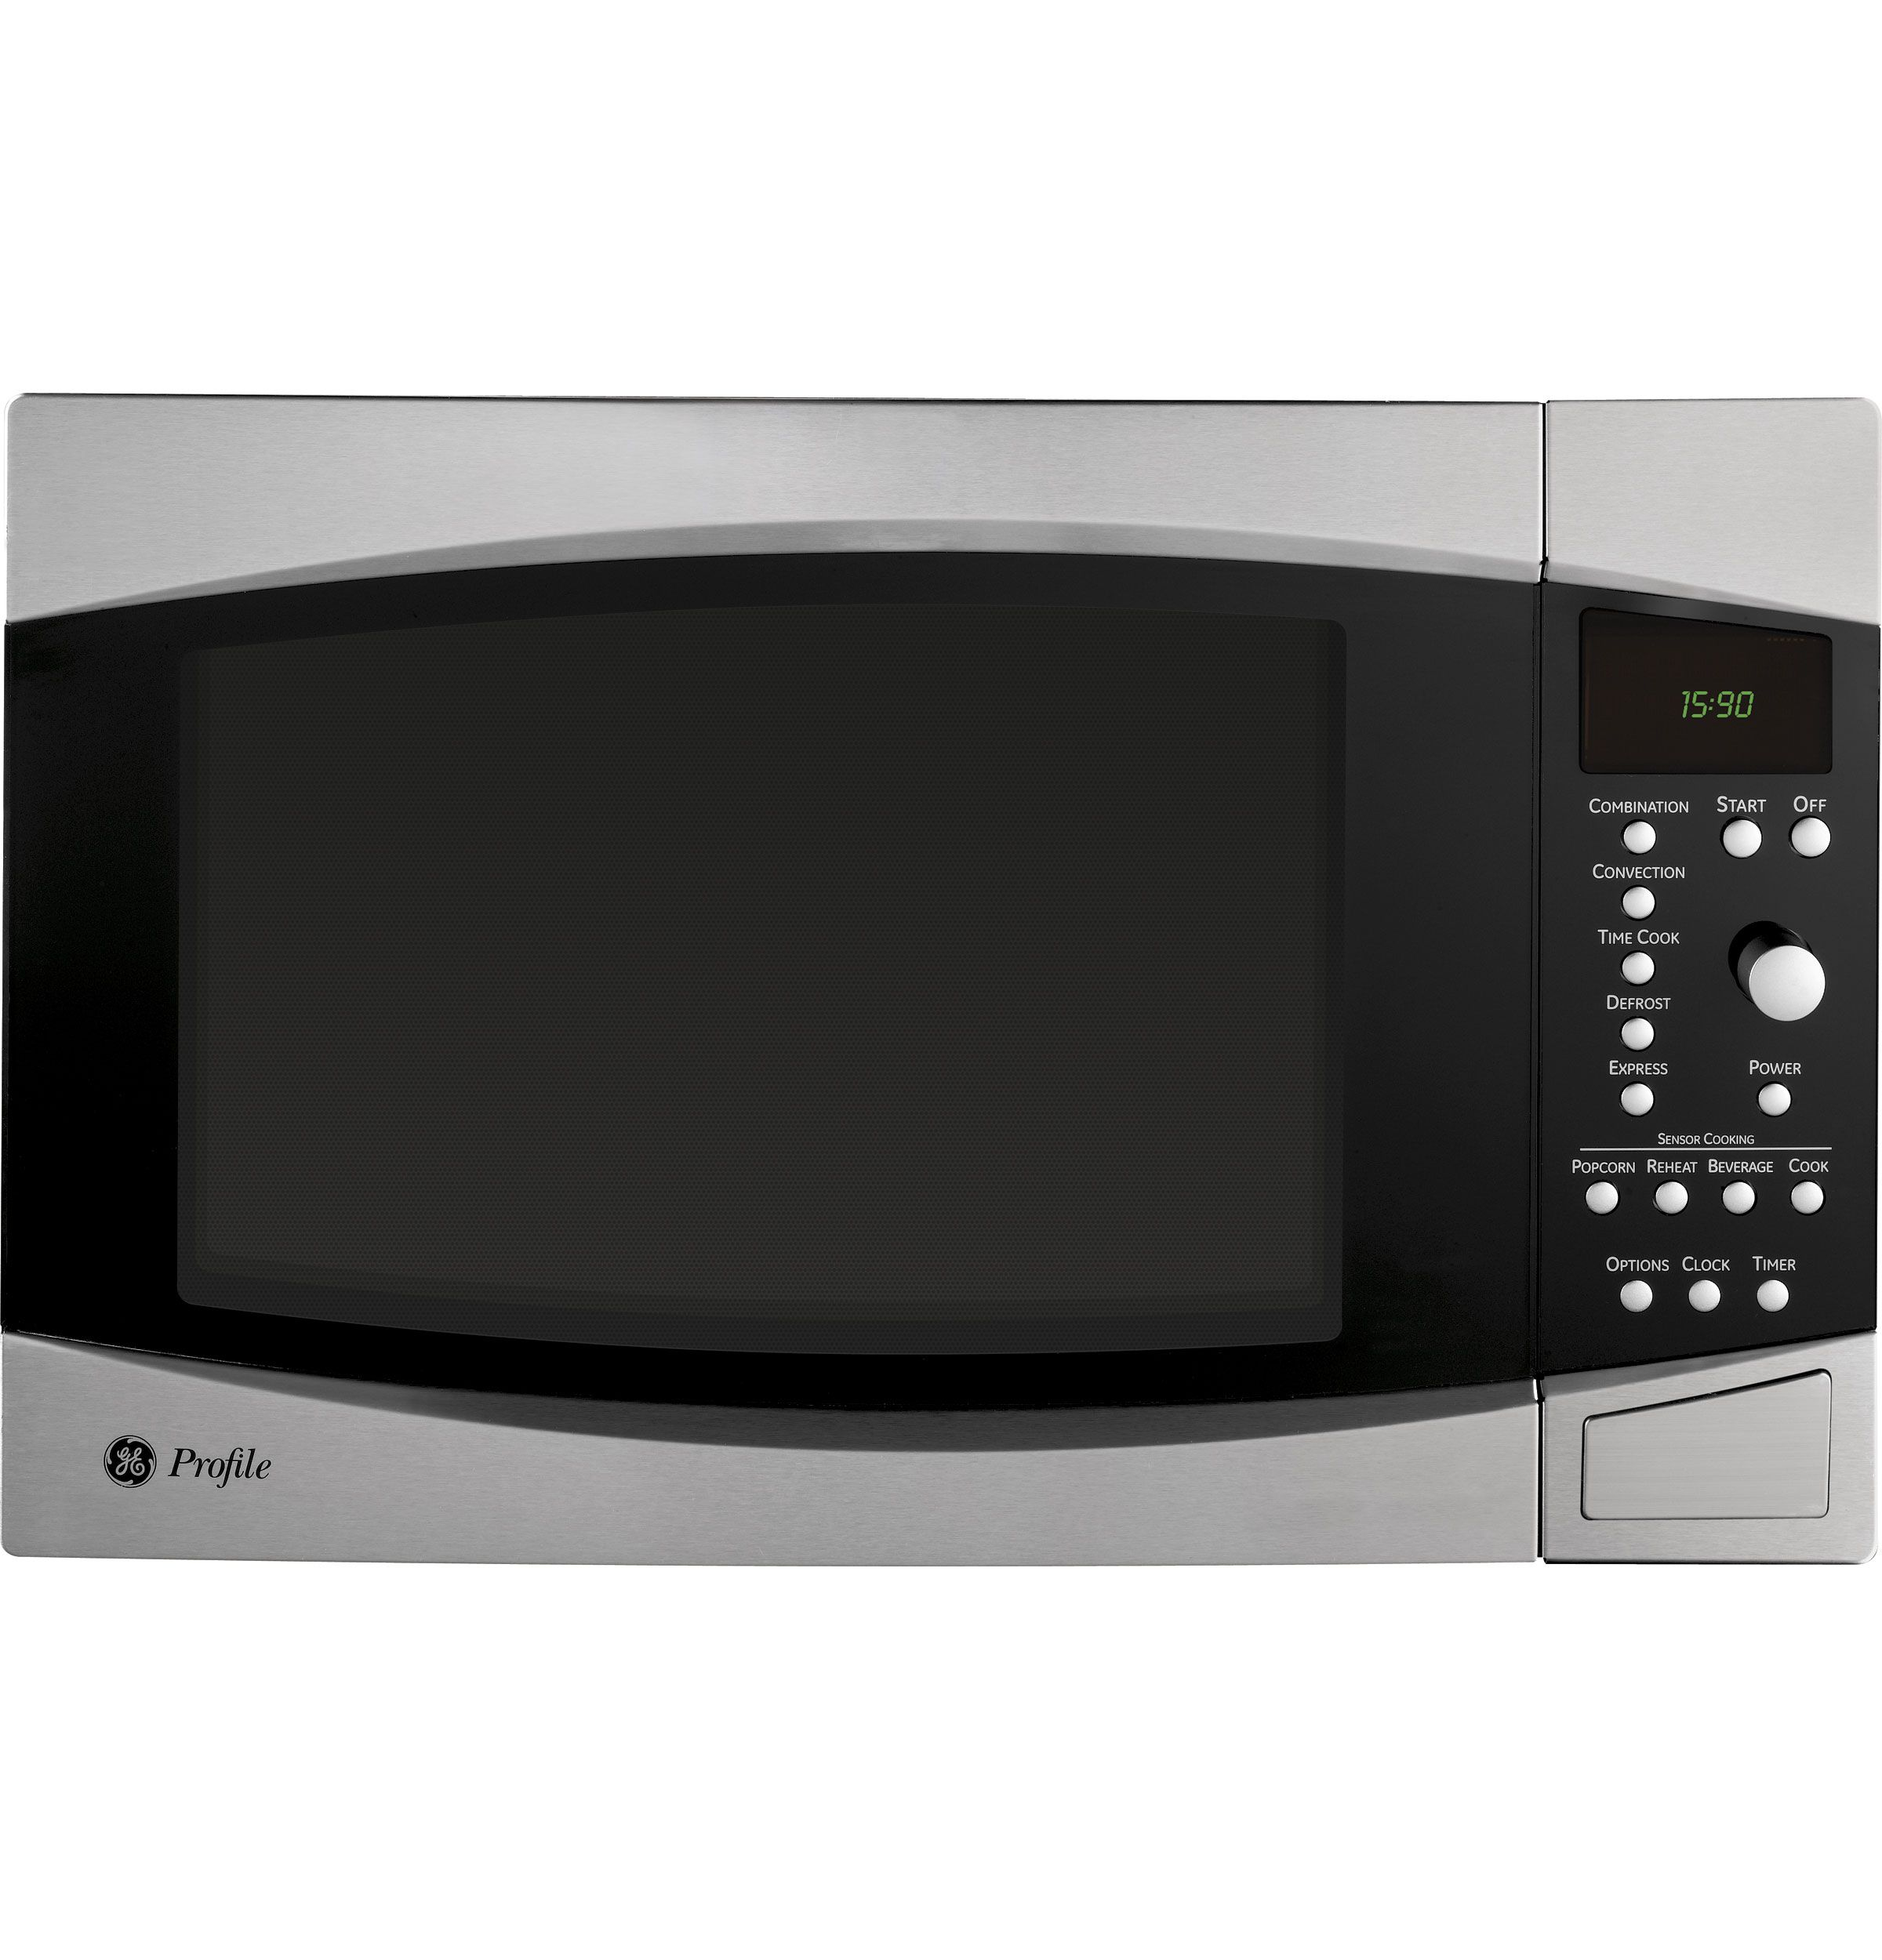 Peb1590smss Ge Profile 1 5 Cu Ft Countertop Convection Microwave Oven Ge Appliances Microwave Convection